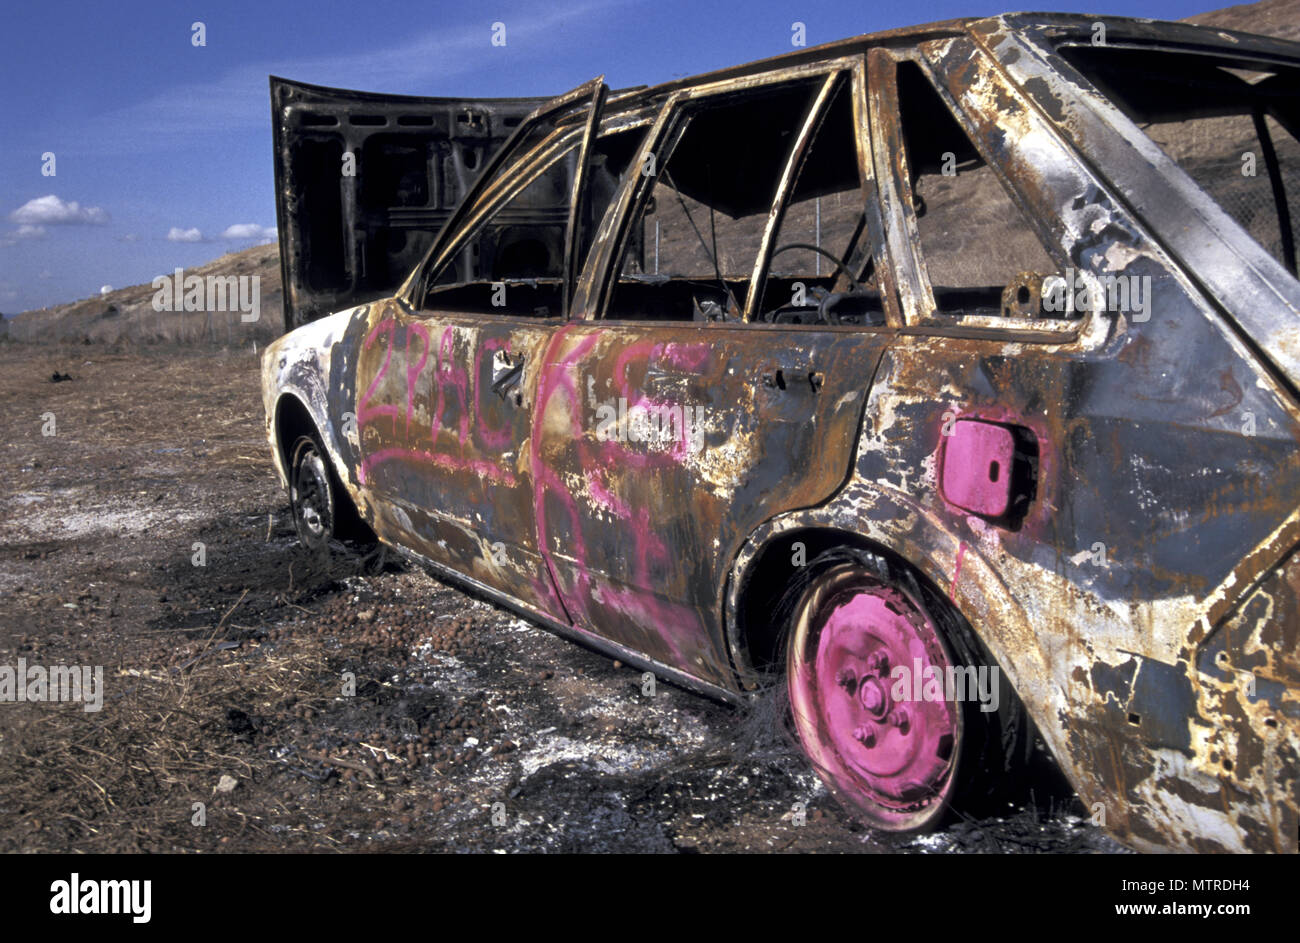 BURNT OUT AND ABANDONED CAR, SOUTH AUSTRALIA - Stock Image